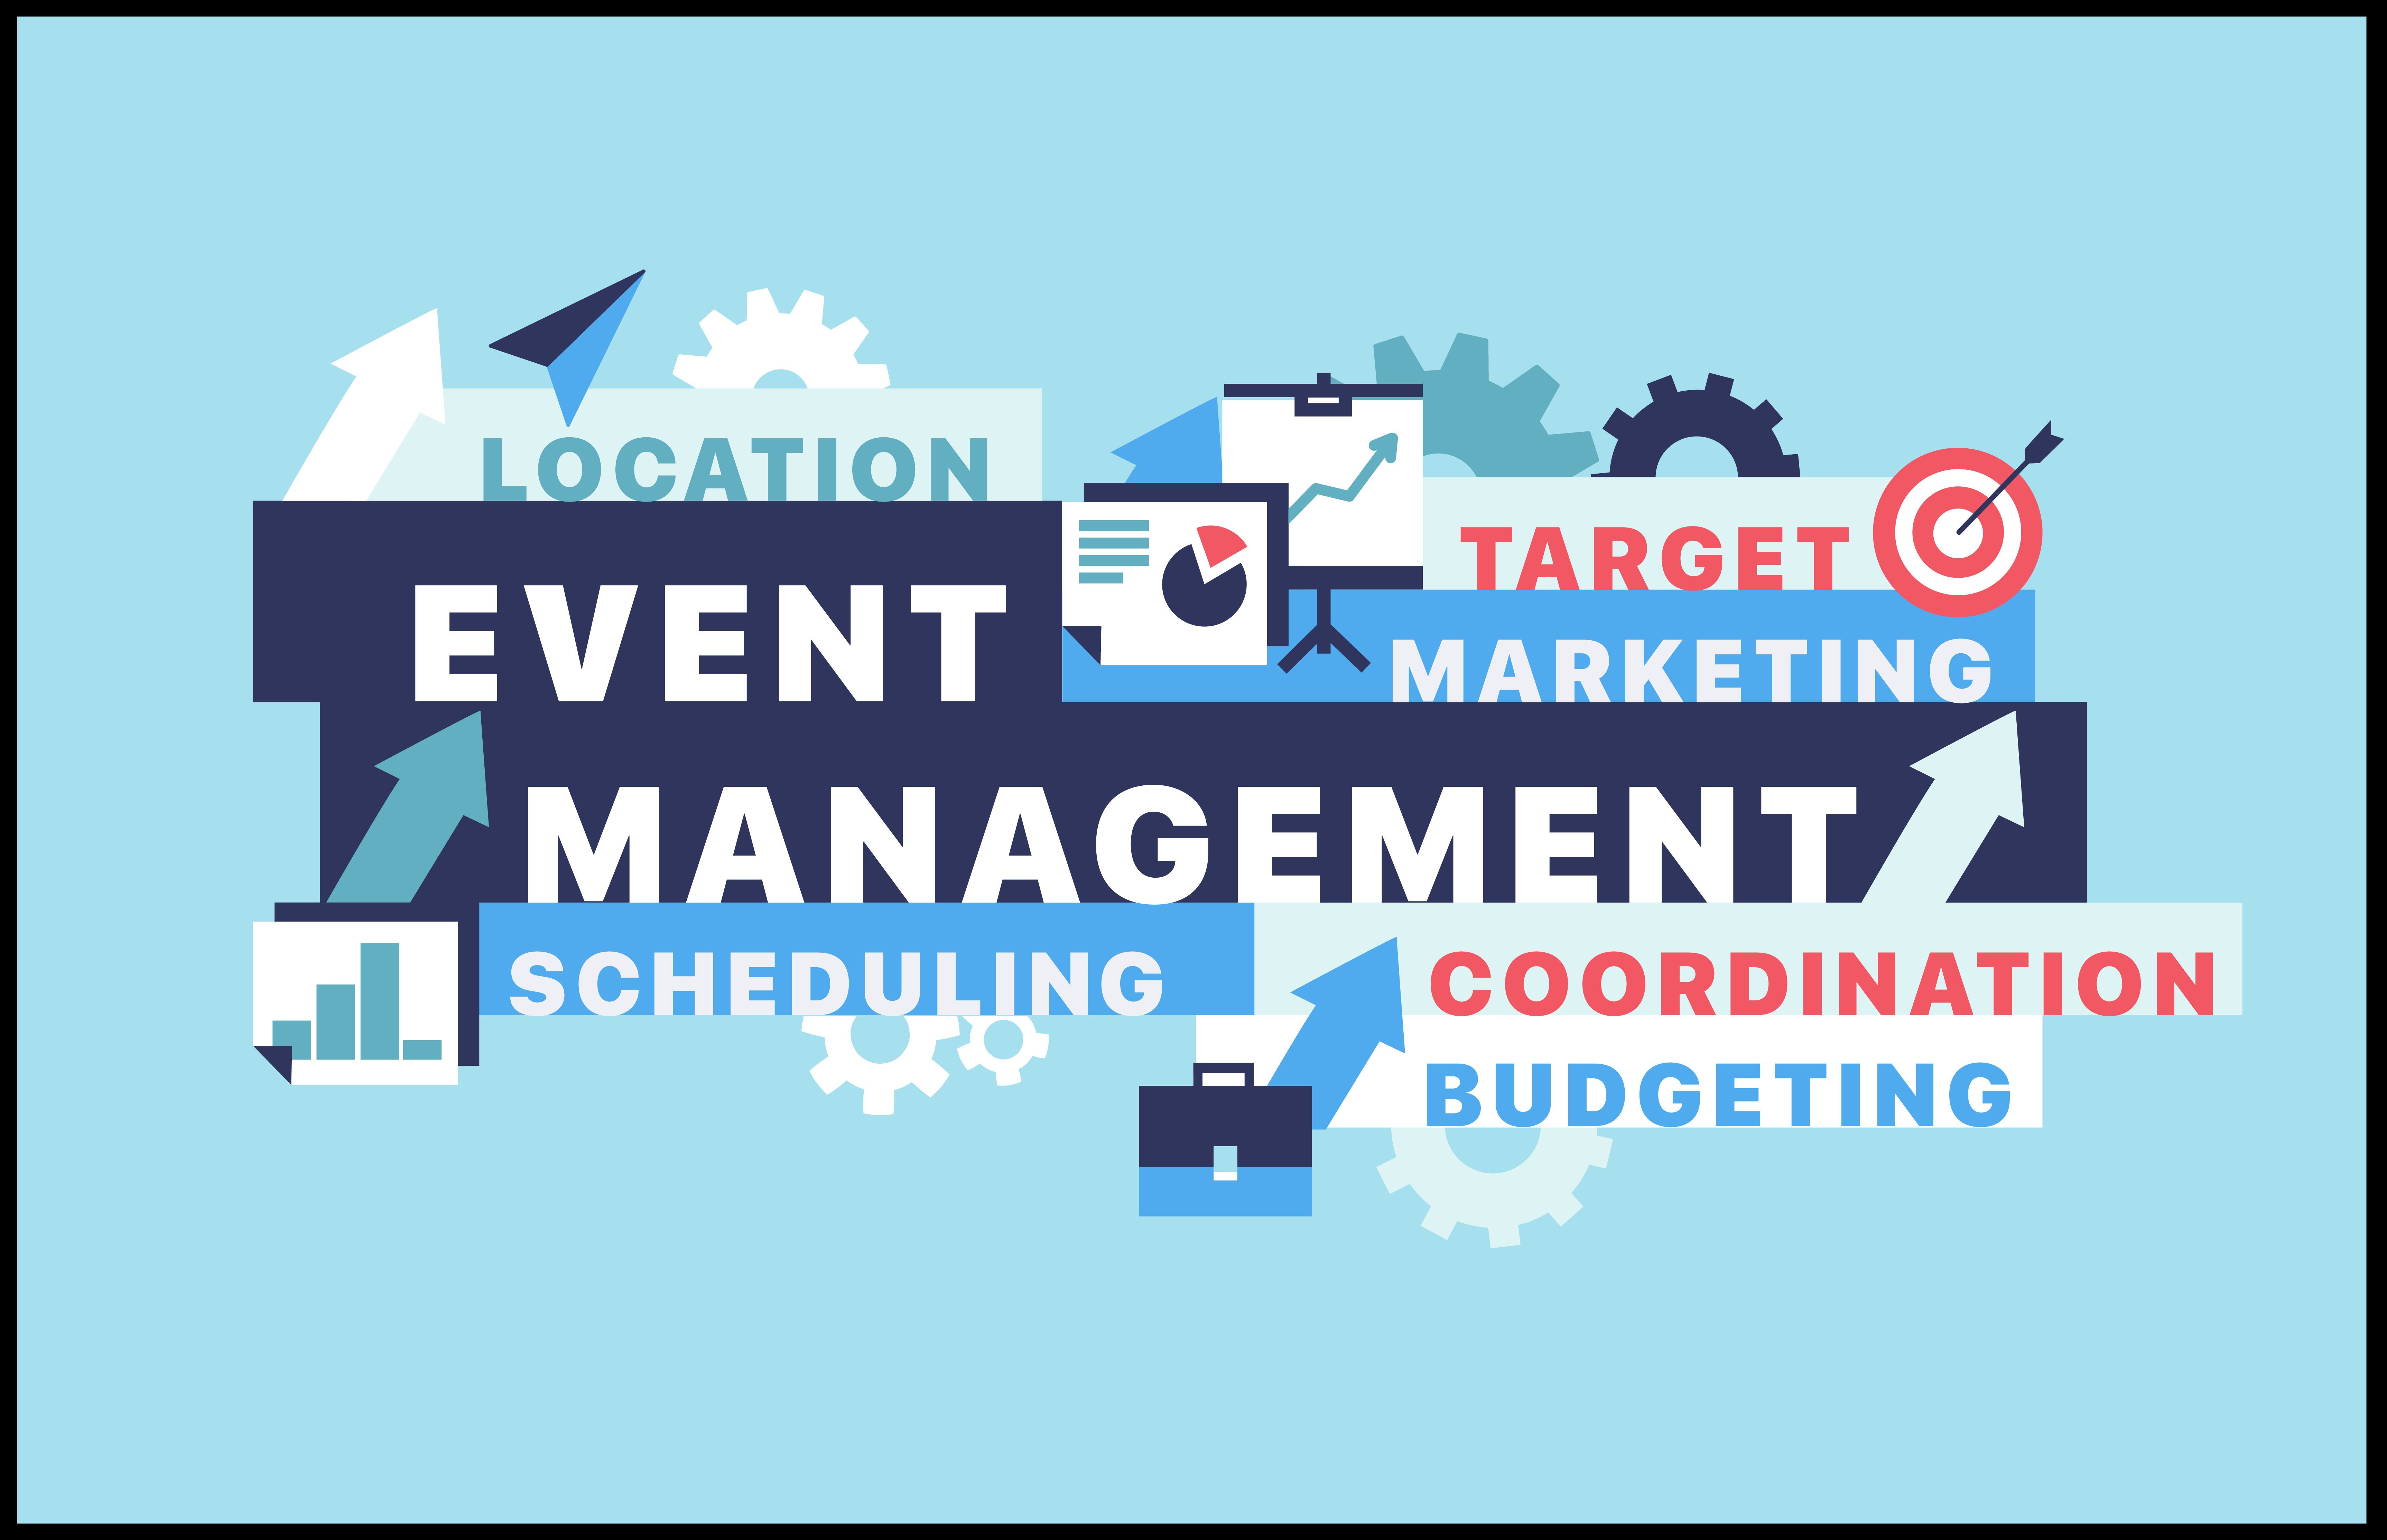 iStock-1141029209 (1) for 4 Event Planning Elements Blog